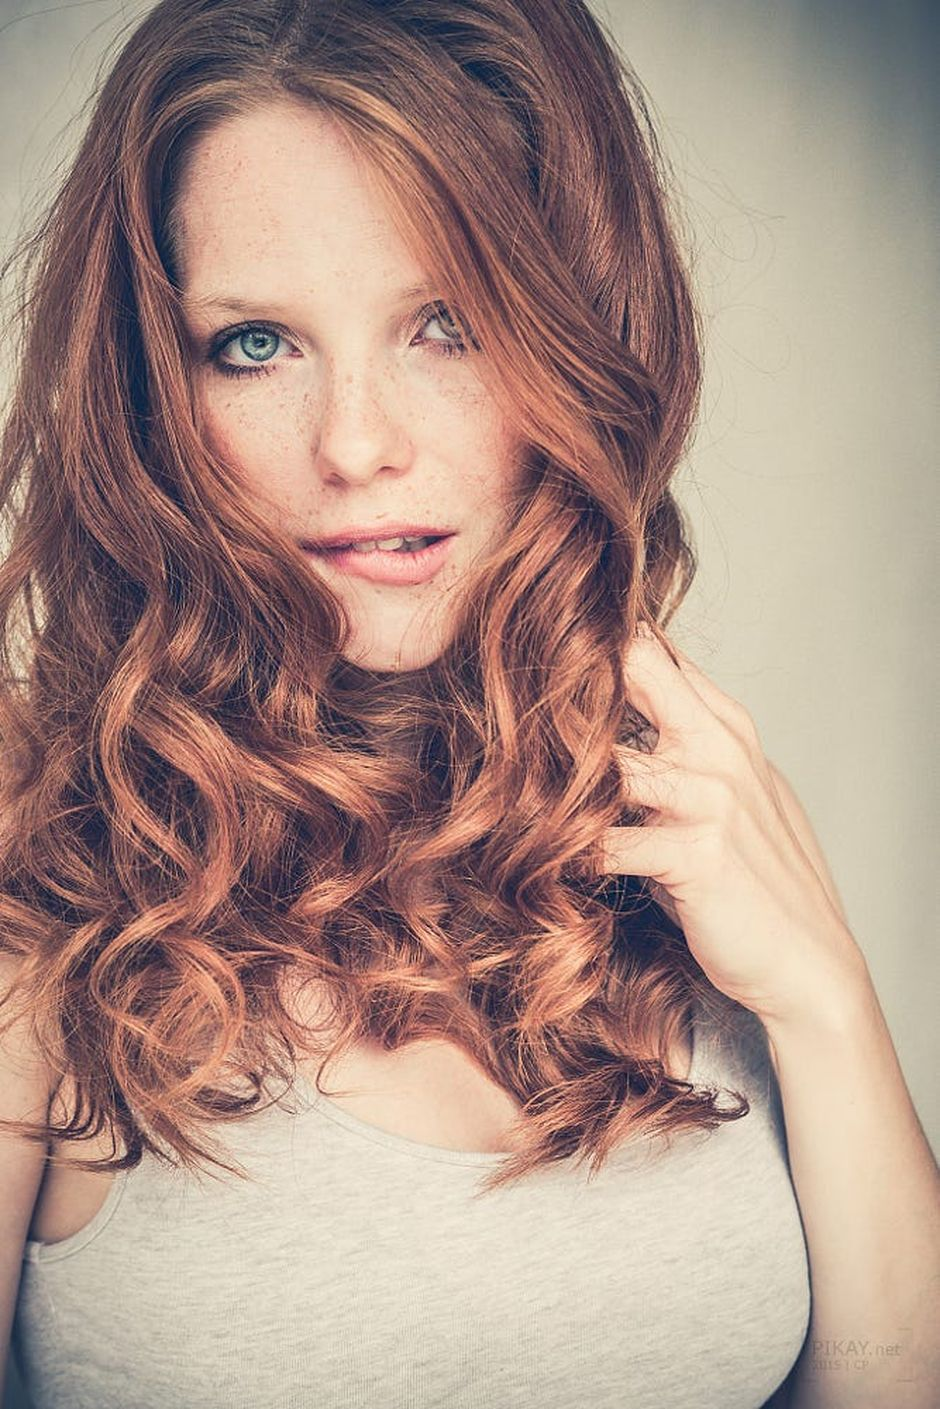 Awesome Hottest Redheads Will Make You Look Beautiful and Stunning 45